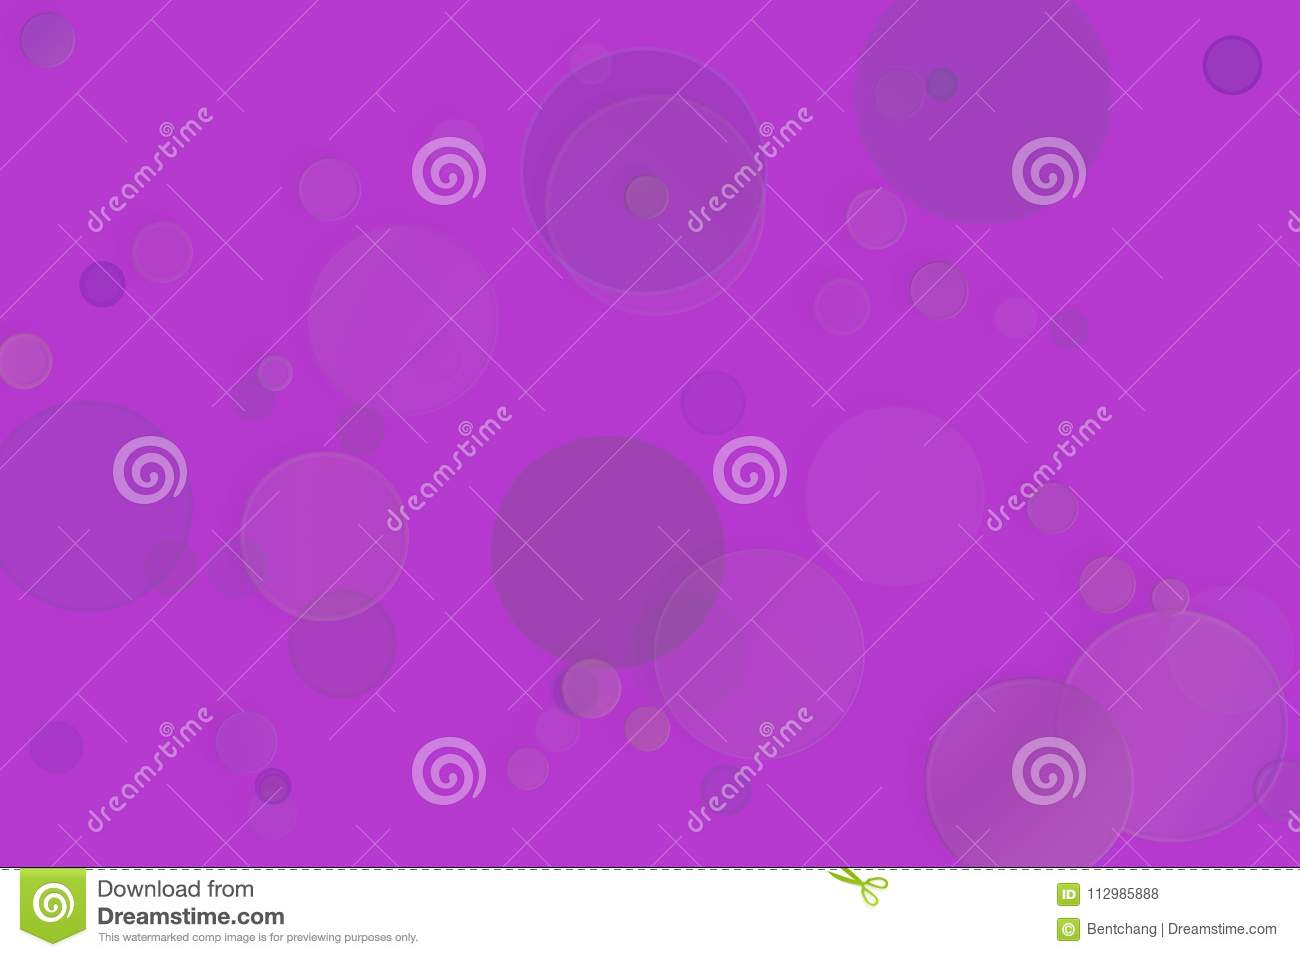 Conceptual background shape for design or texture. Pattern, fashion, canvas, wallpaper & creative.